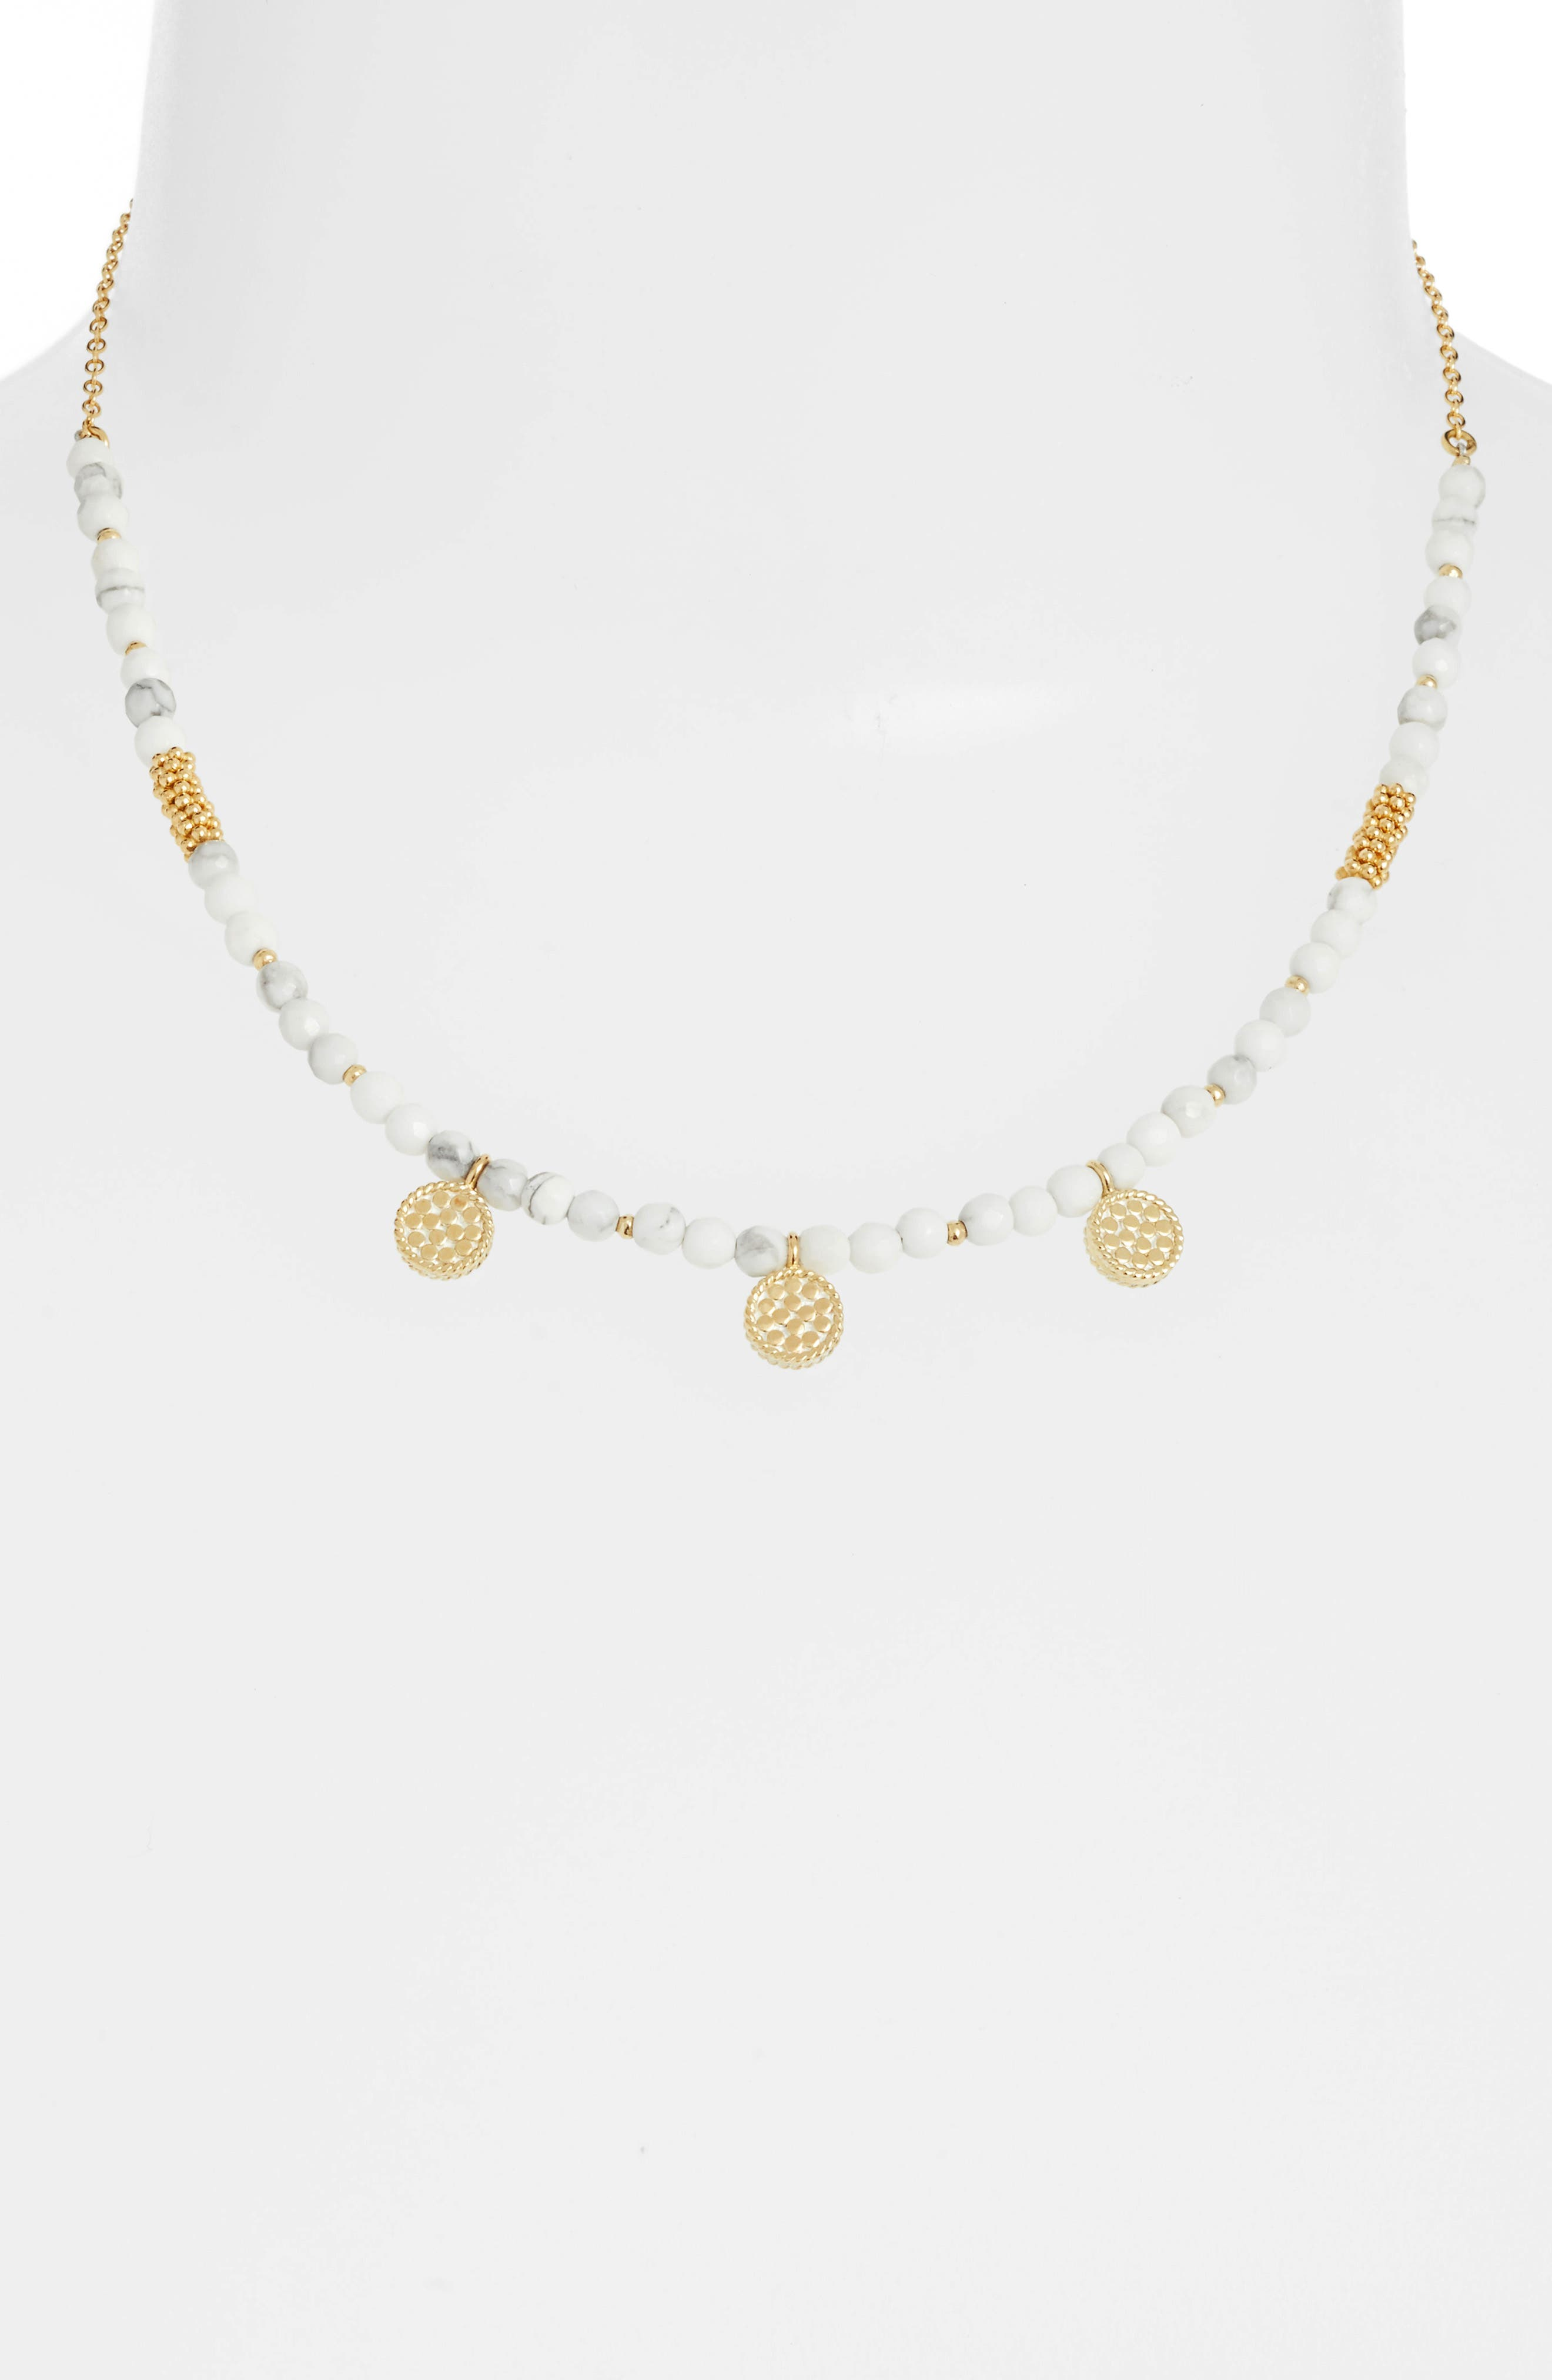 Howlite Beaded Charm Necklace,                             Main thumbnail 1, color,                             Gold/ Howlite